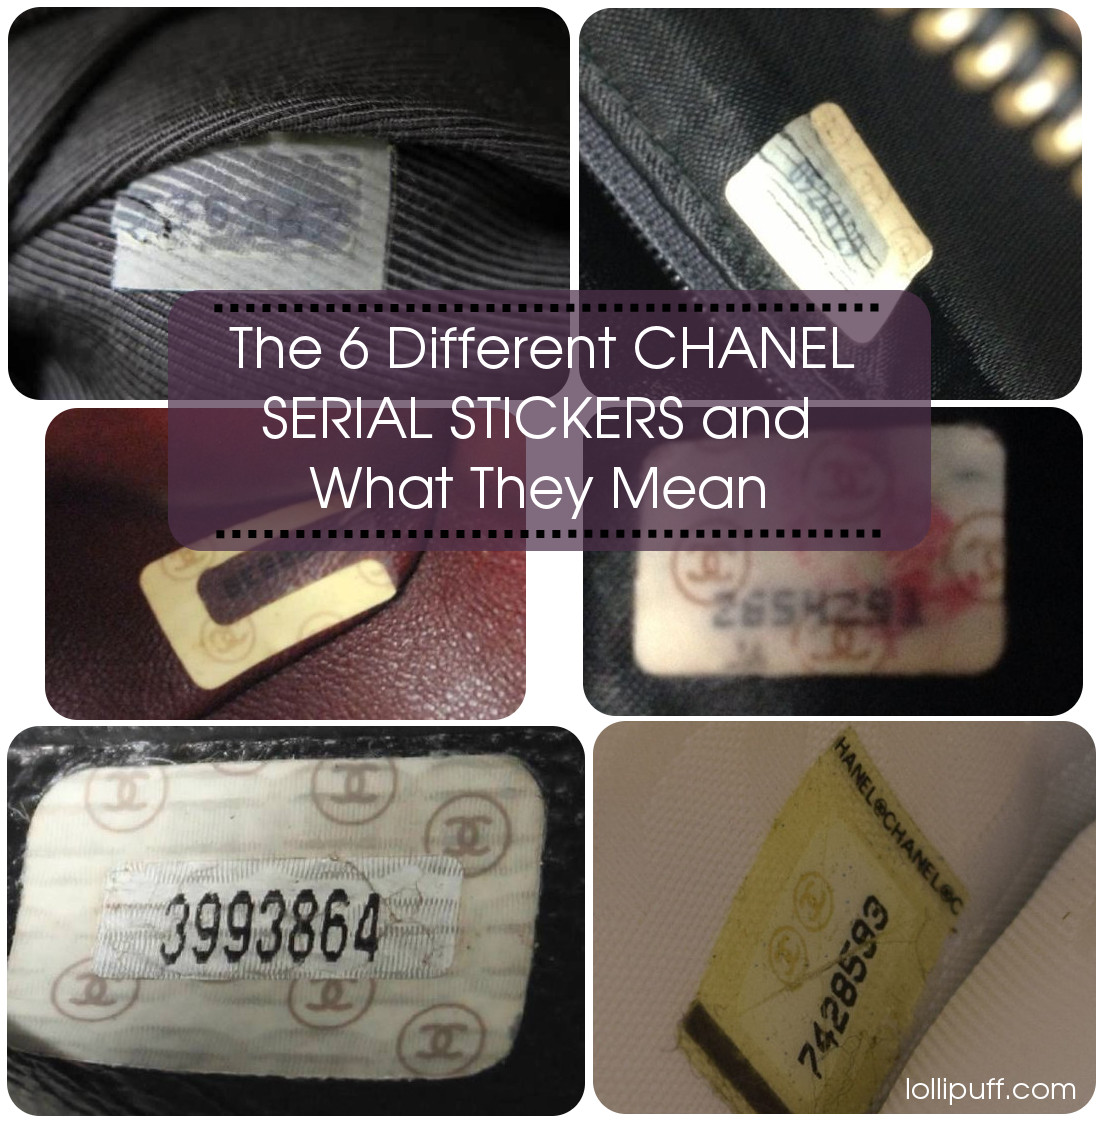 5b8a70e74420 Chanel Serial Number Meaning and Sticker Guide | Lollipuff